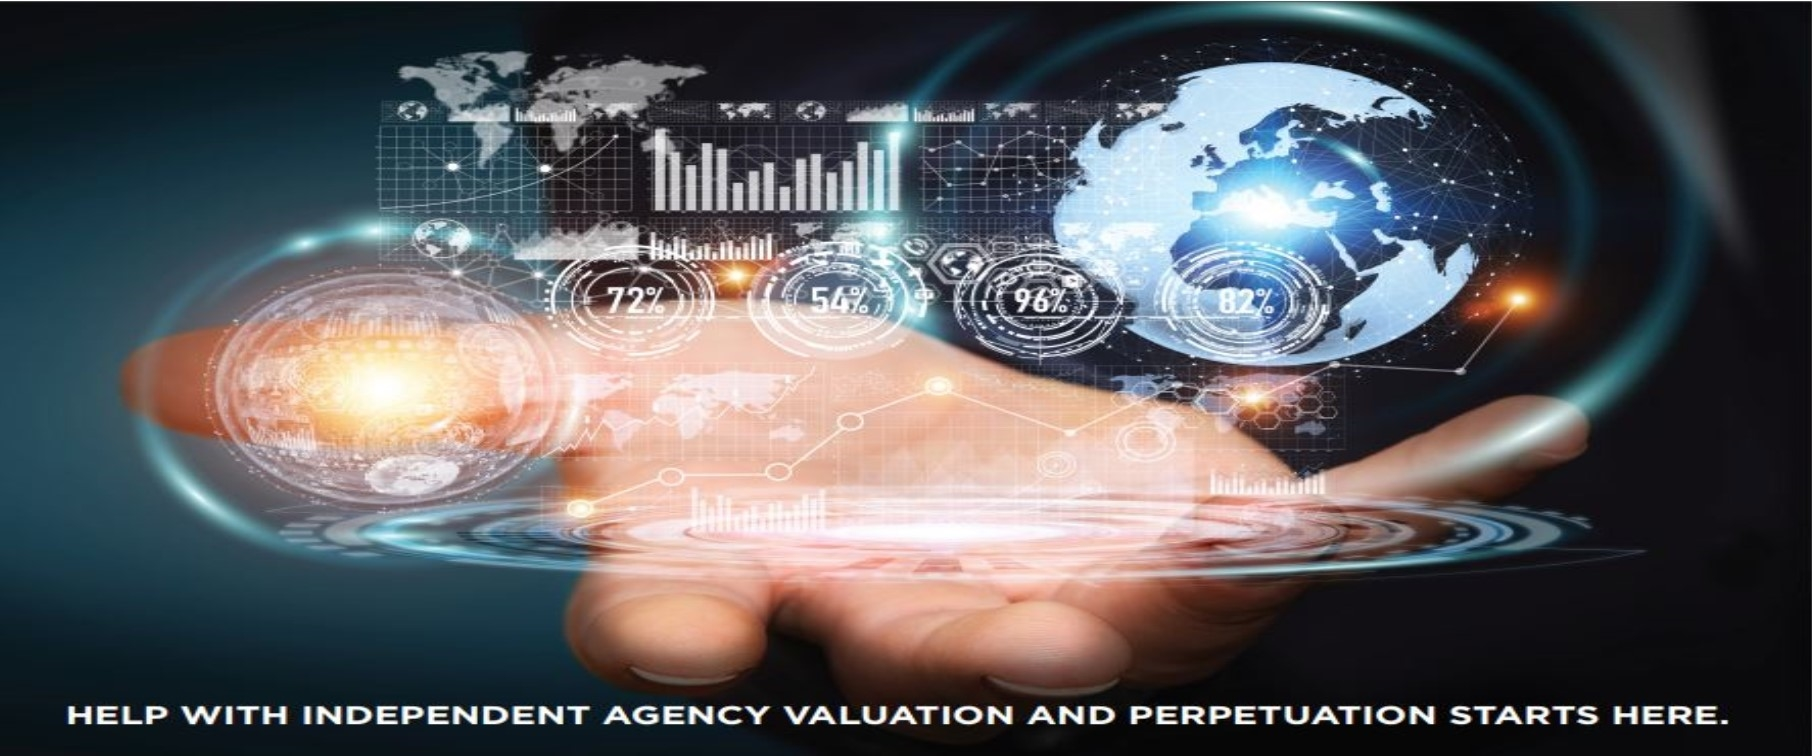 Learn More About Agency Valuations